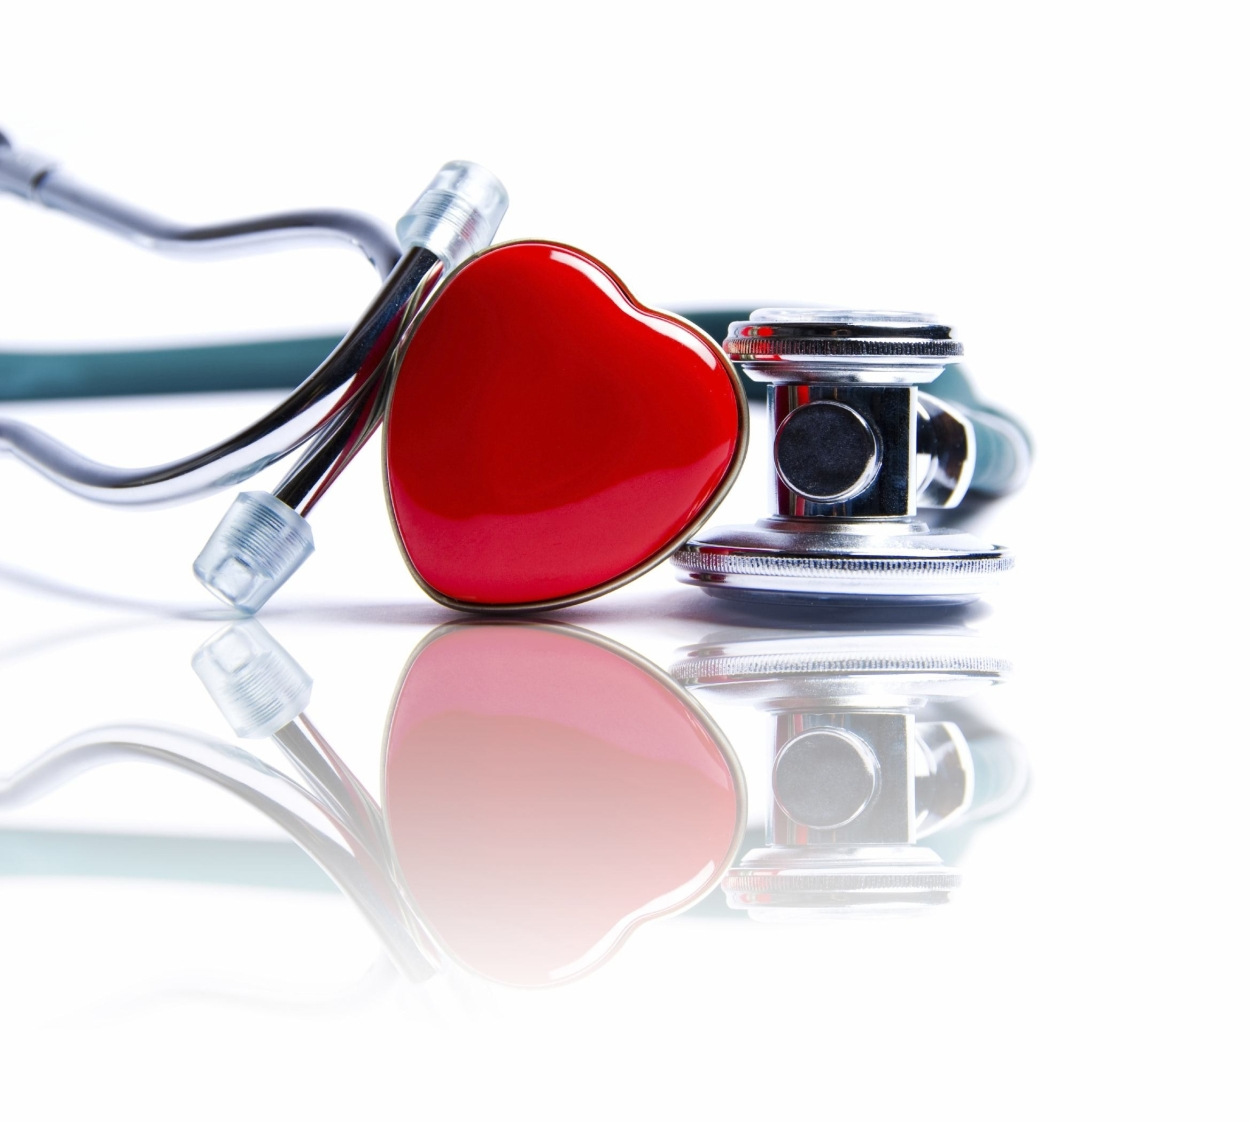 The future of cardiac care needs to focus on 'care'